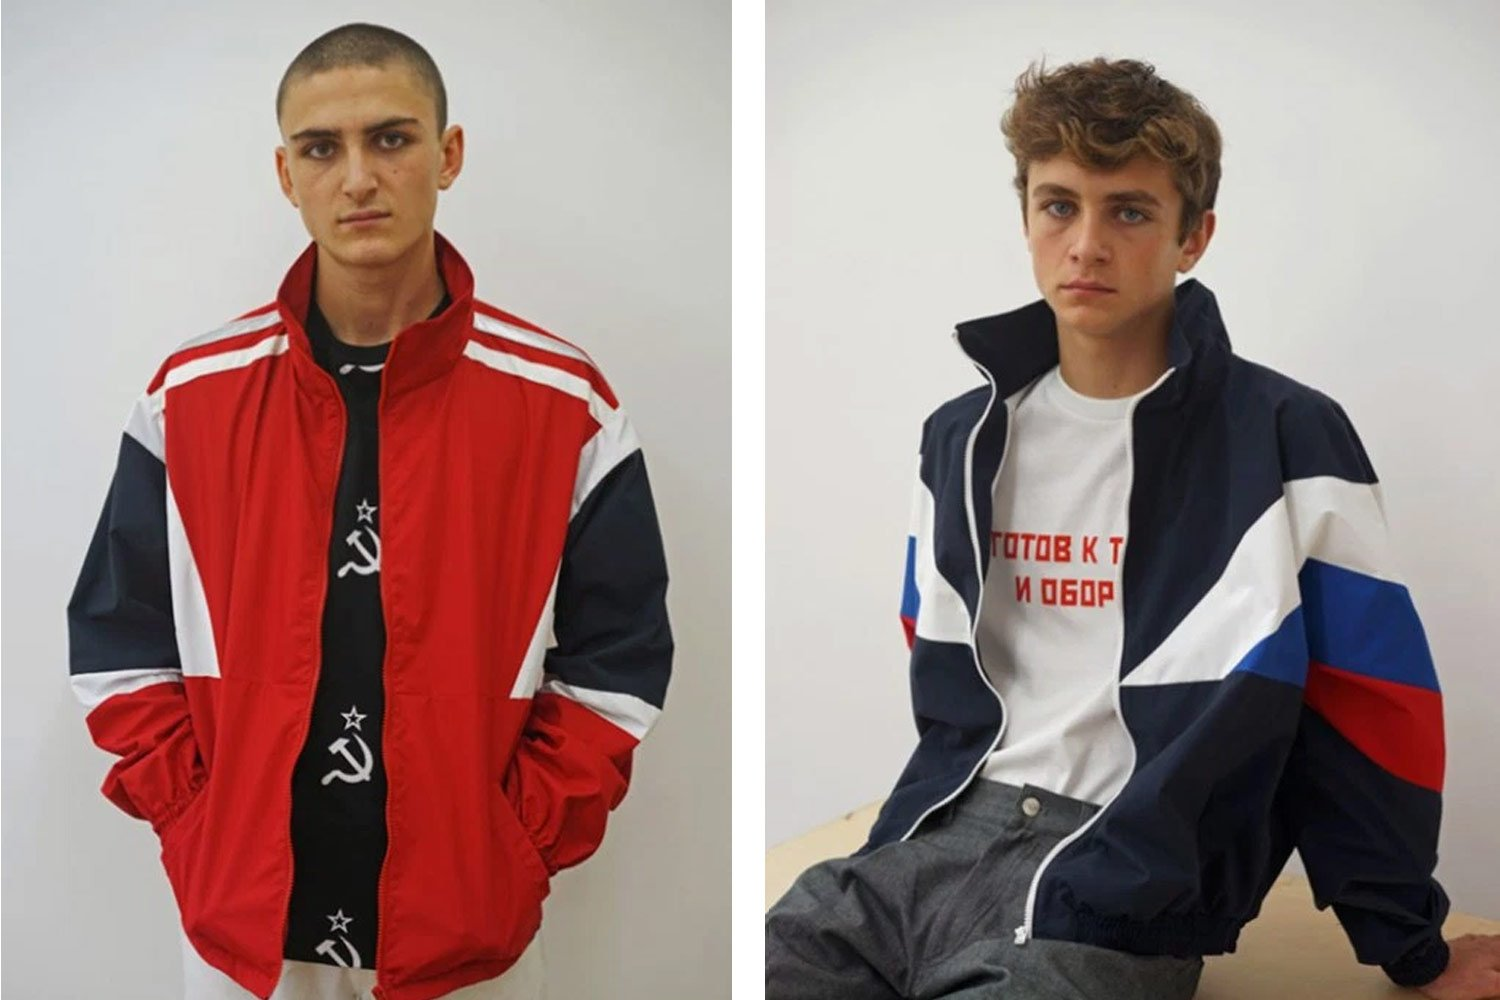 From Gosha Rubchinsky's Spring/Summer 2016 collection